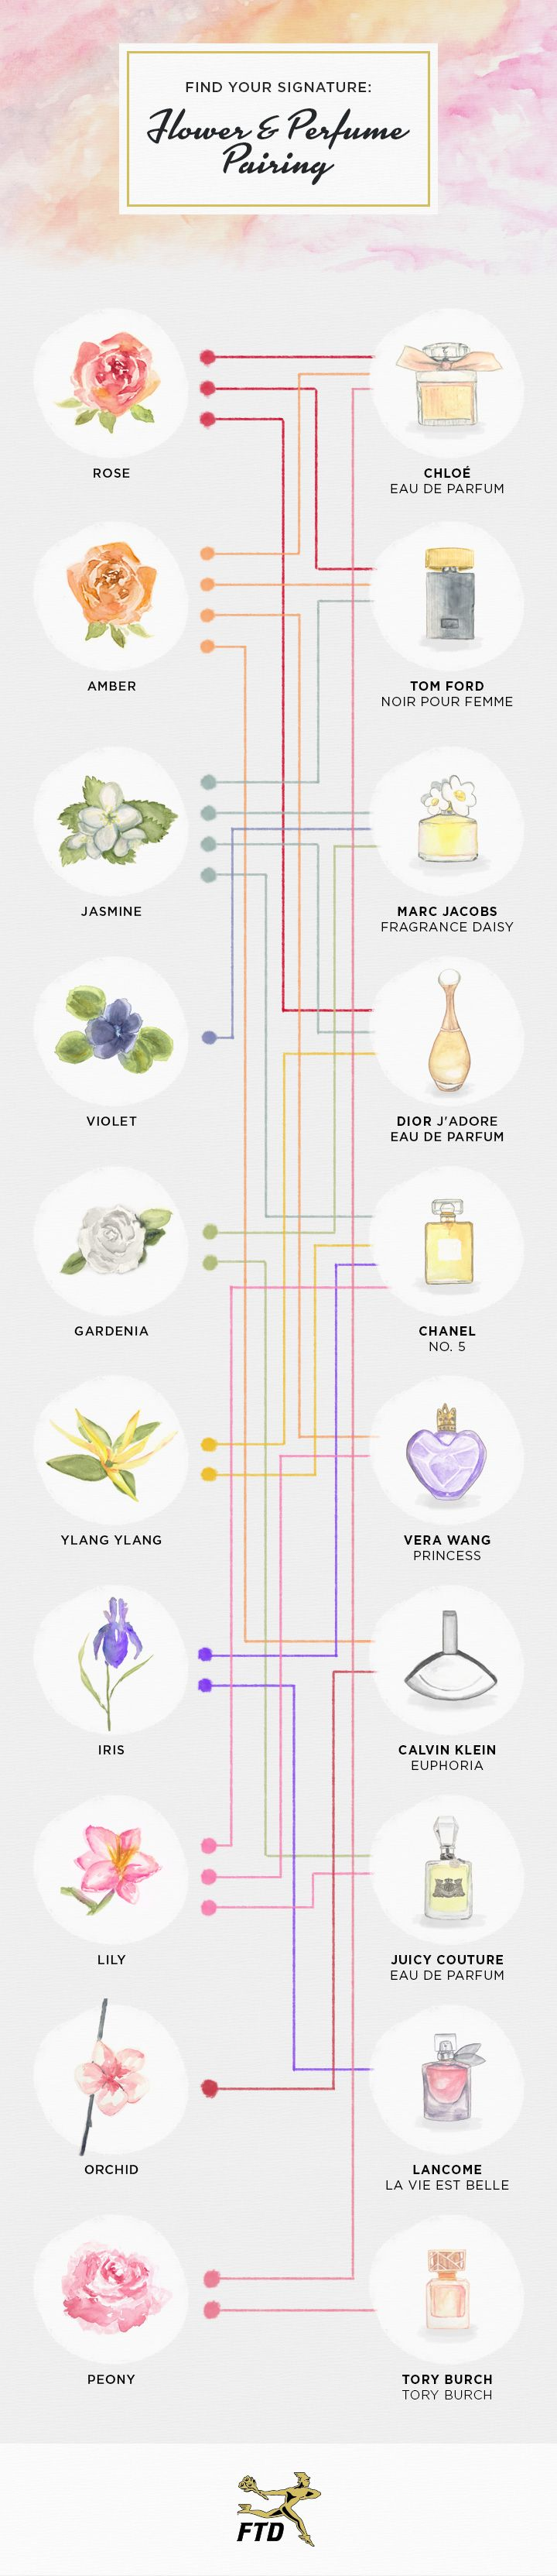 Flower & Perfume Pairings: Find Your Signature Scent - Fresh by FTD